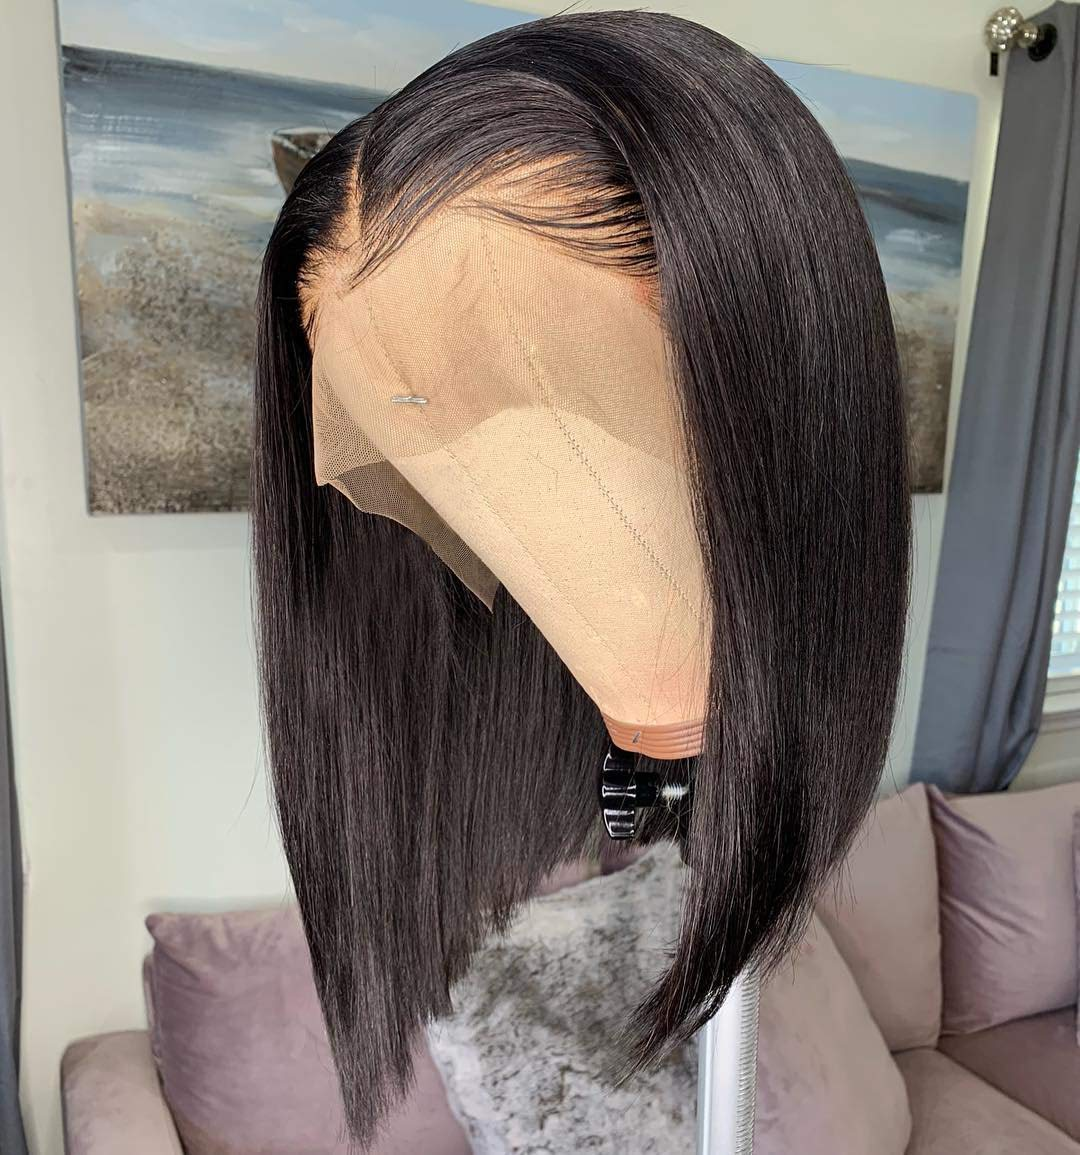 13x6 Short Bob Lace Front Wigs Human Hair For Women Bleached Knots Full End Brazilian Human Hair Wigs density 150% Pre-Plucked (12inch) by U&A